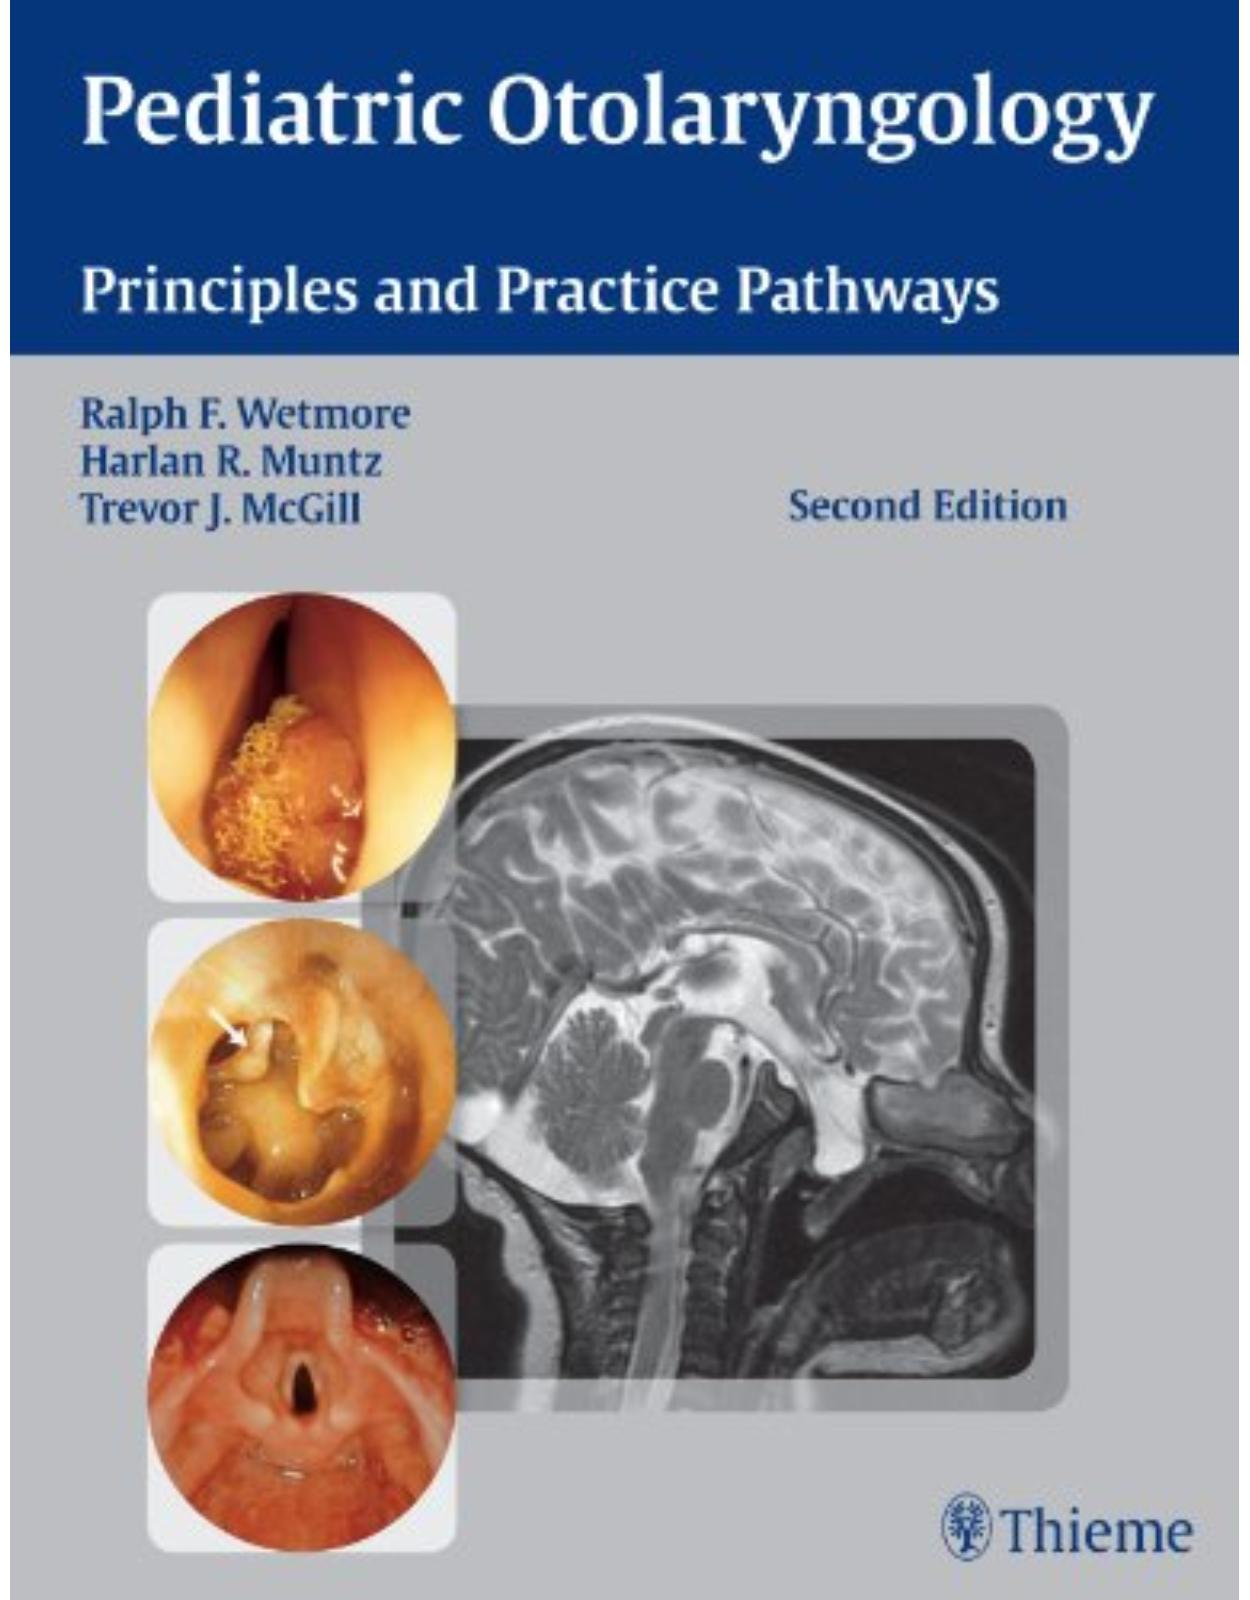 Pediatric Otolaryngology Principles and Practice Pathways